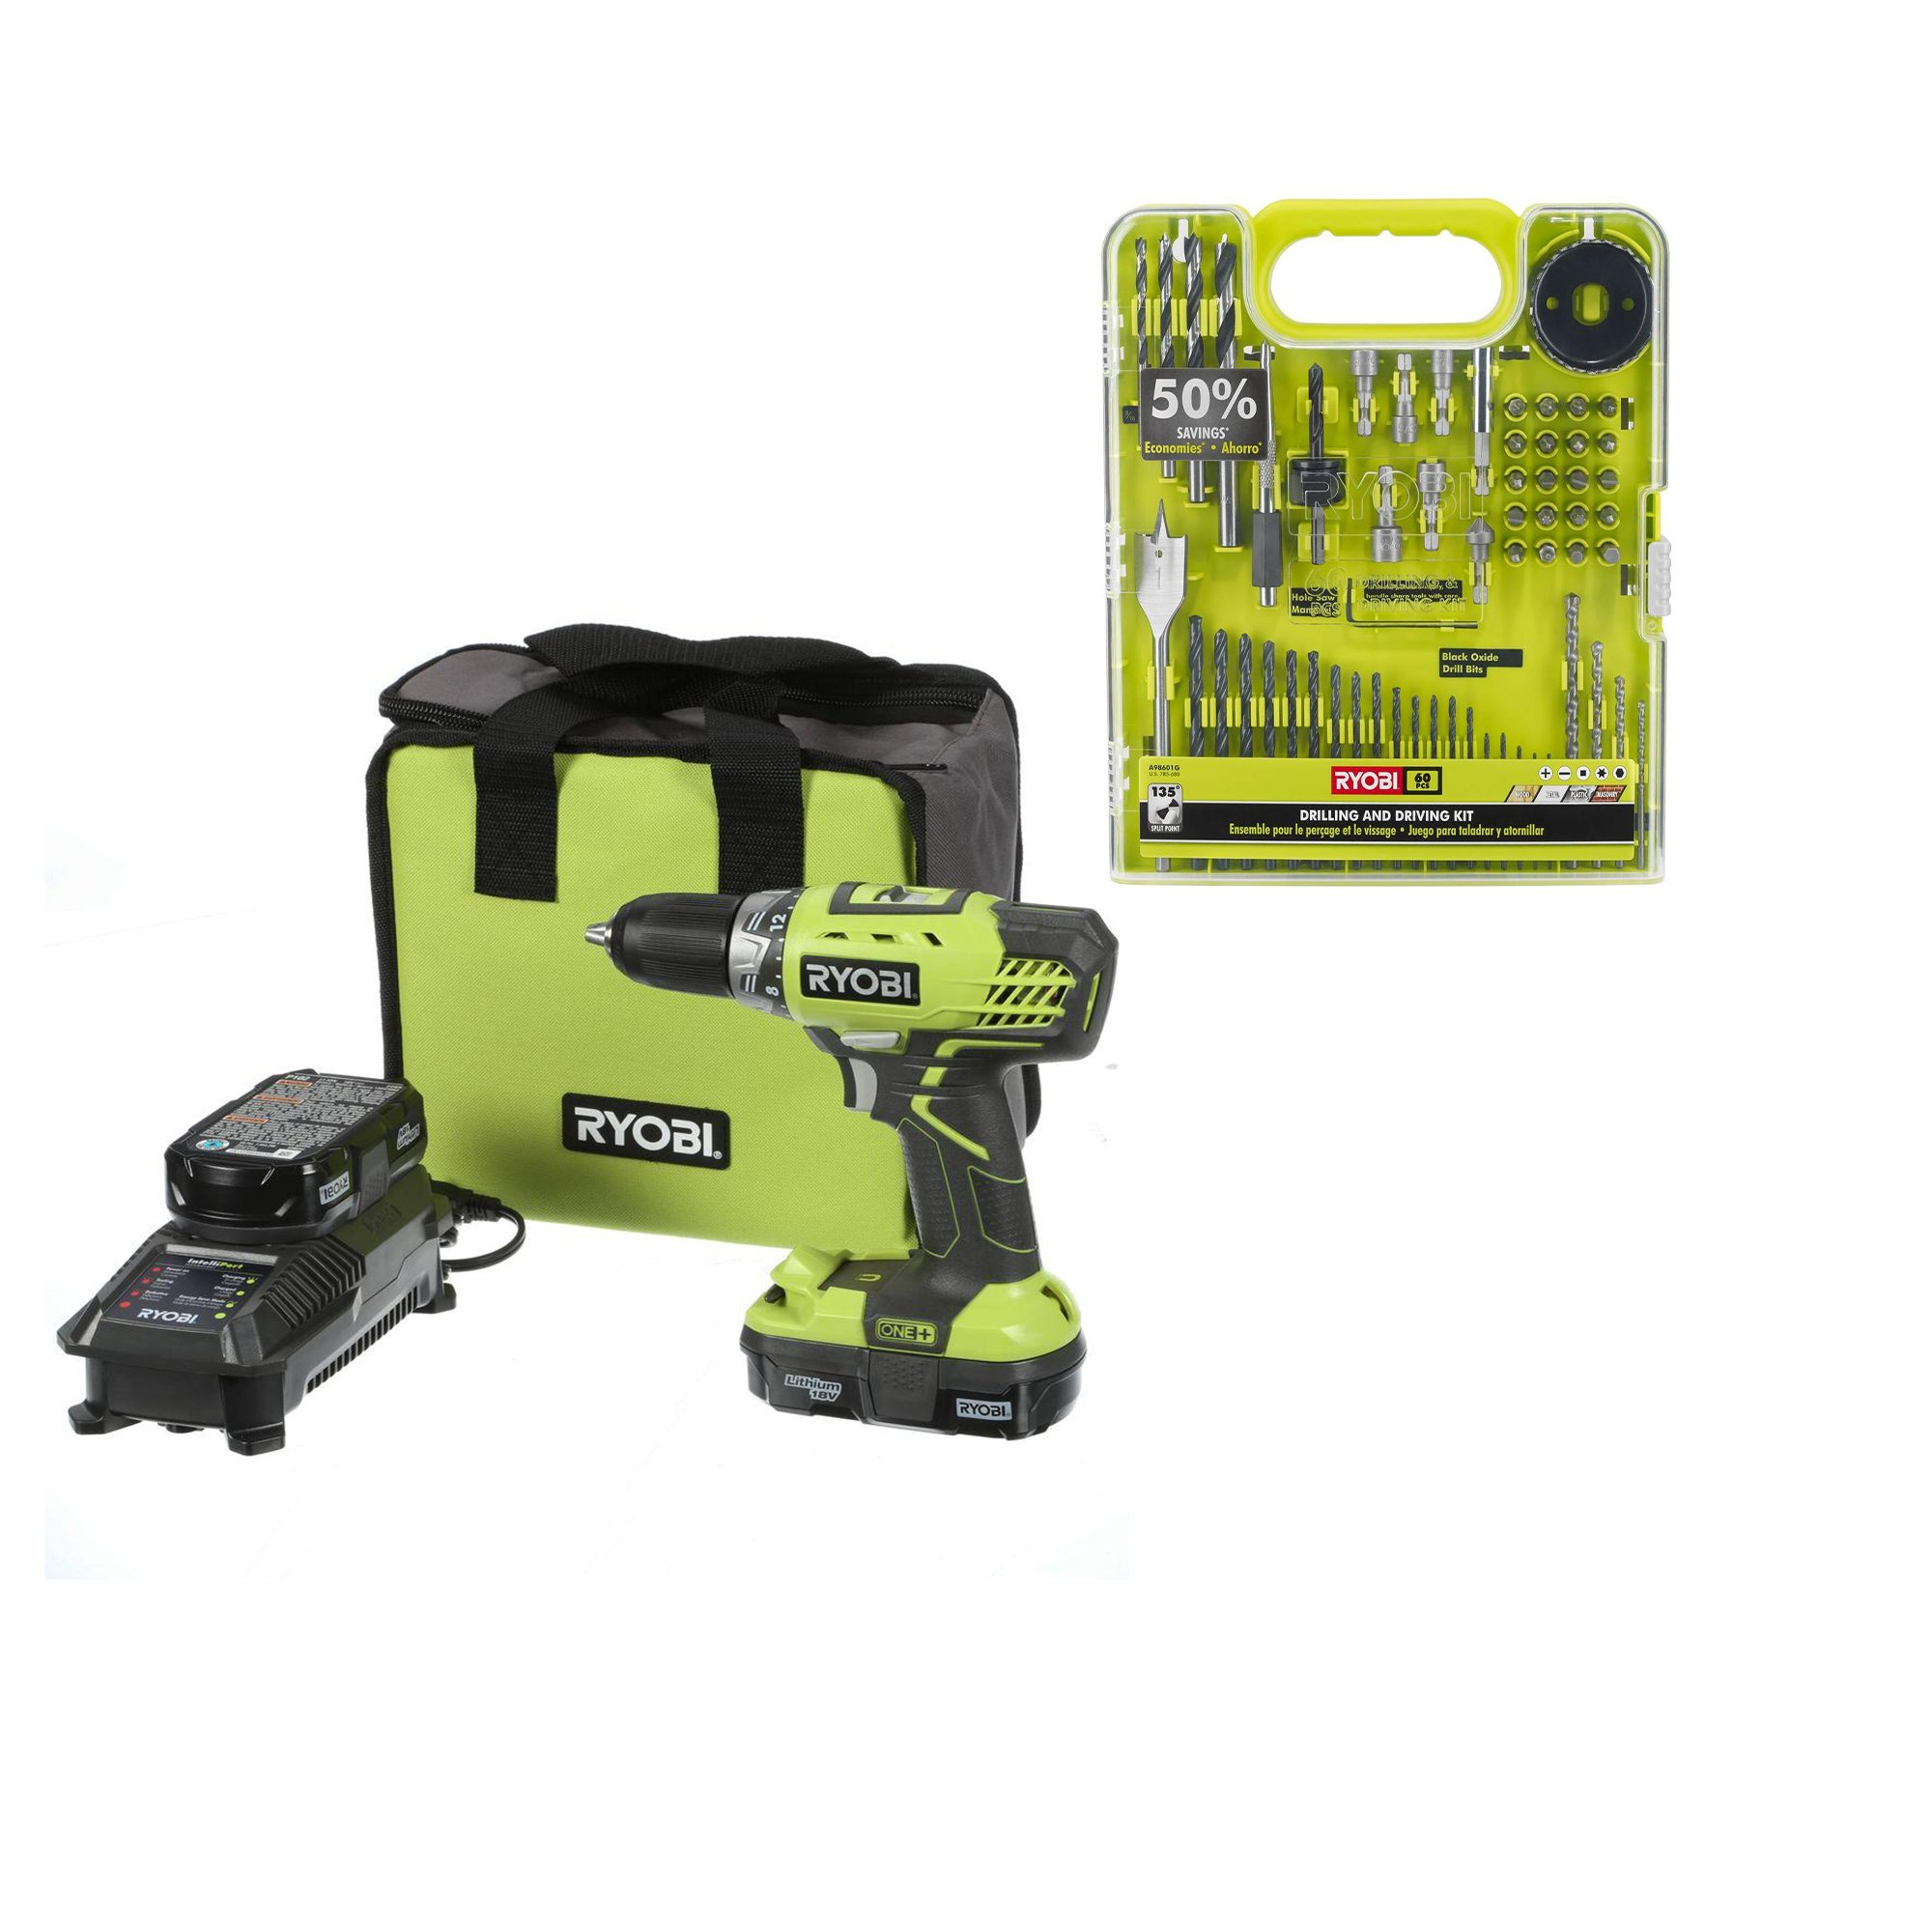 Cordless Drill Kit: Ryobi P1811 ONE+ 18-Volt Lithium-Ion Compact Drill/Driver Kit with Ryobi A98601G (60 Piece) Drill and Drive Kit (Bundle)